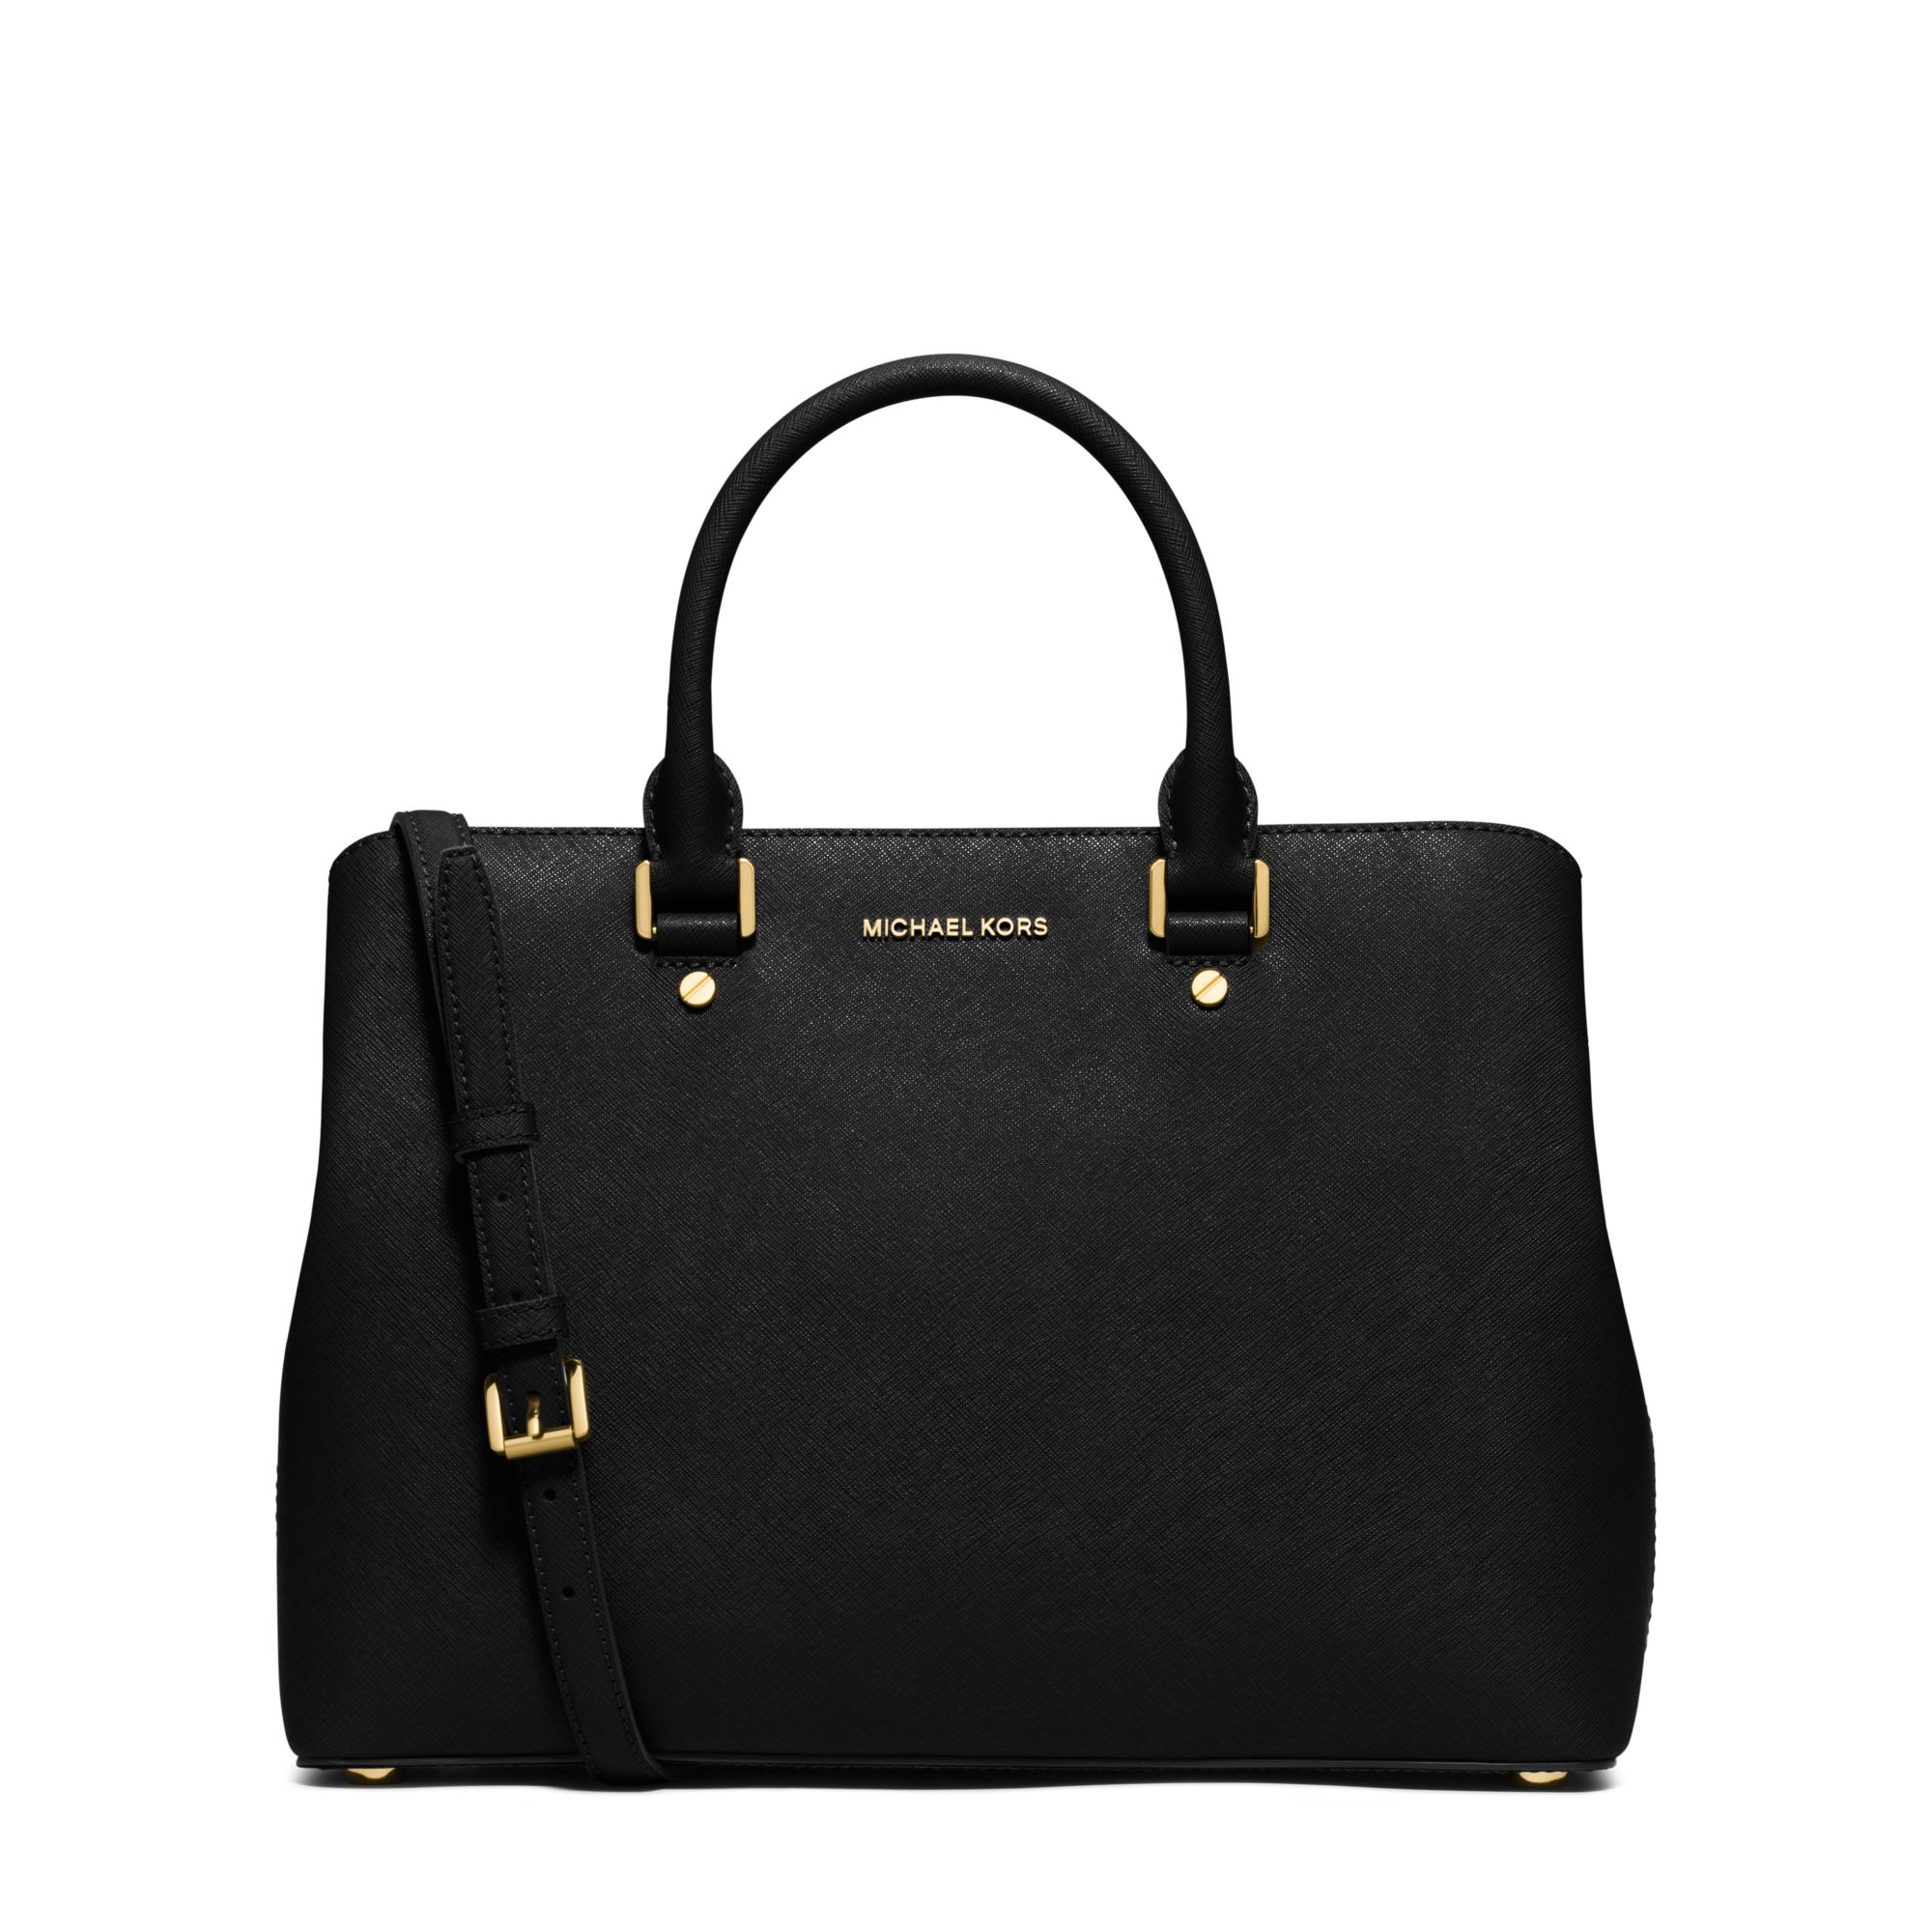 michael kors savannah large saffiano leather satchel in black lyst. Black Bedroom Furniture Sets. Home Design Ideas